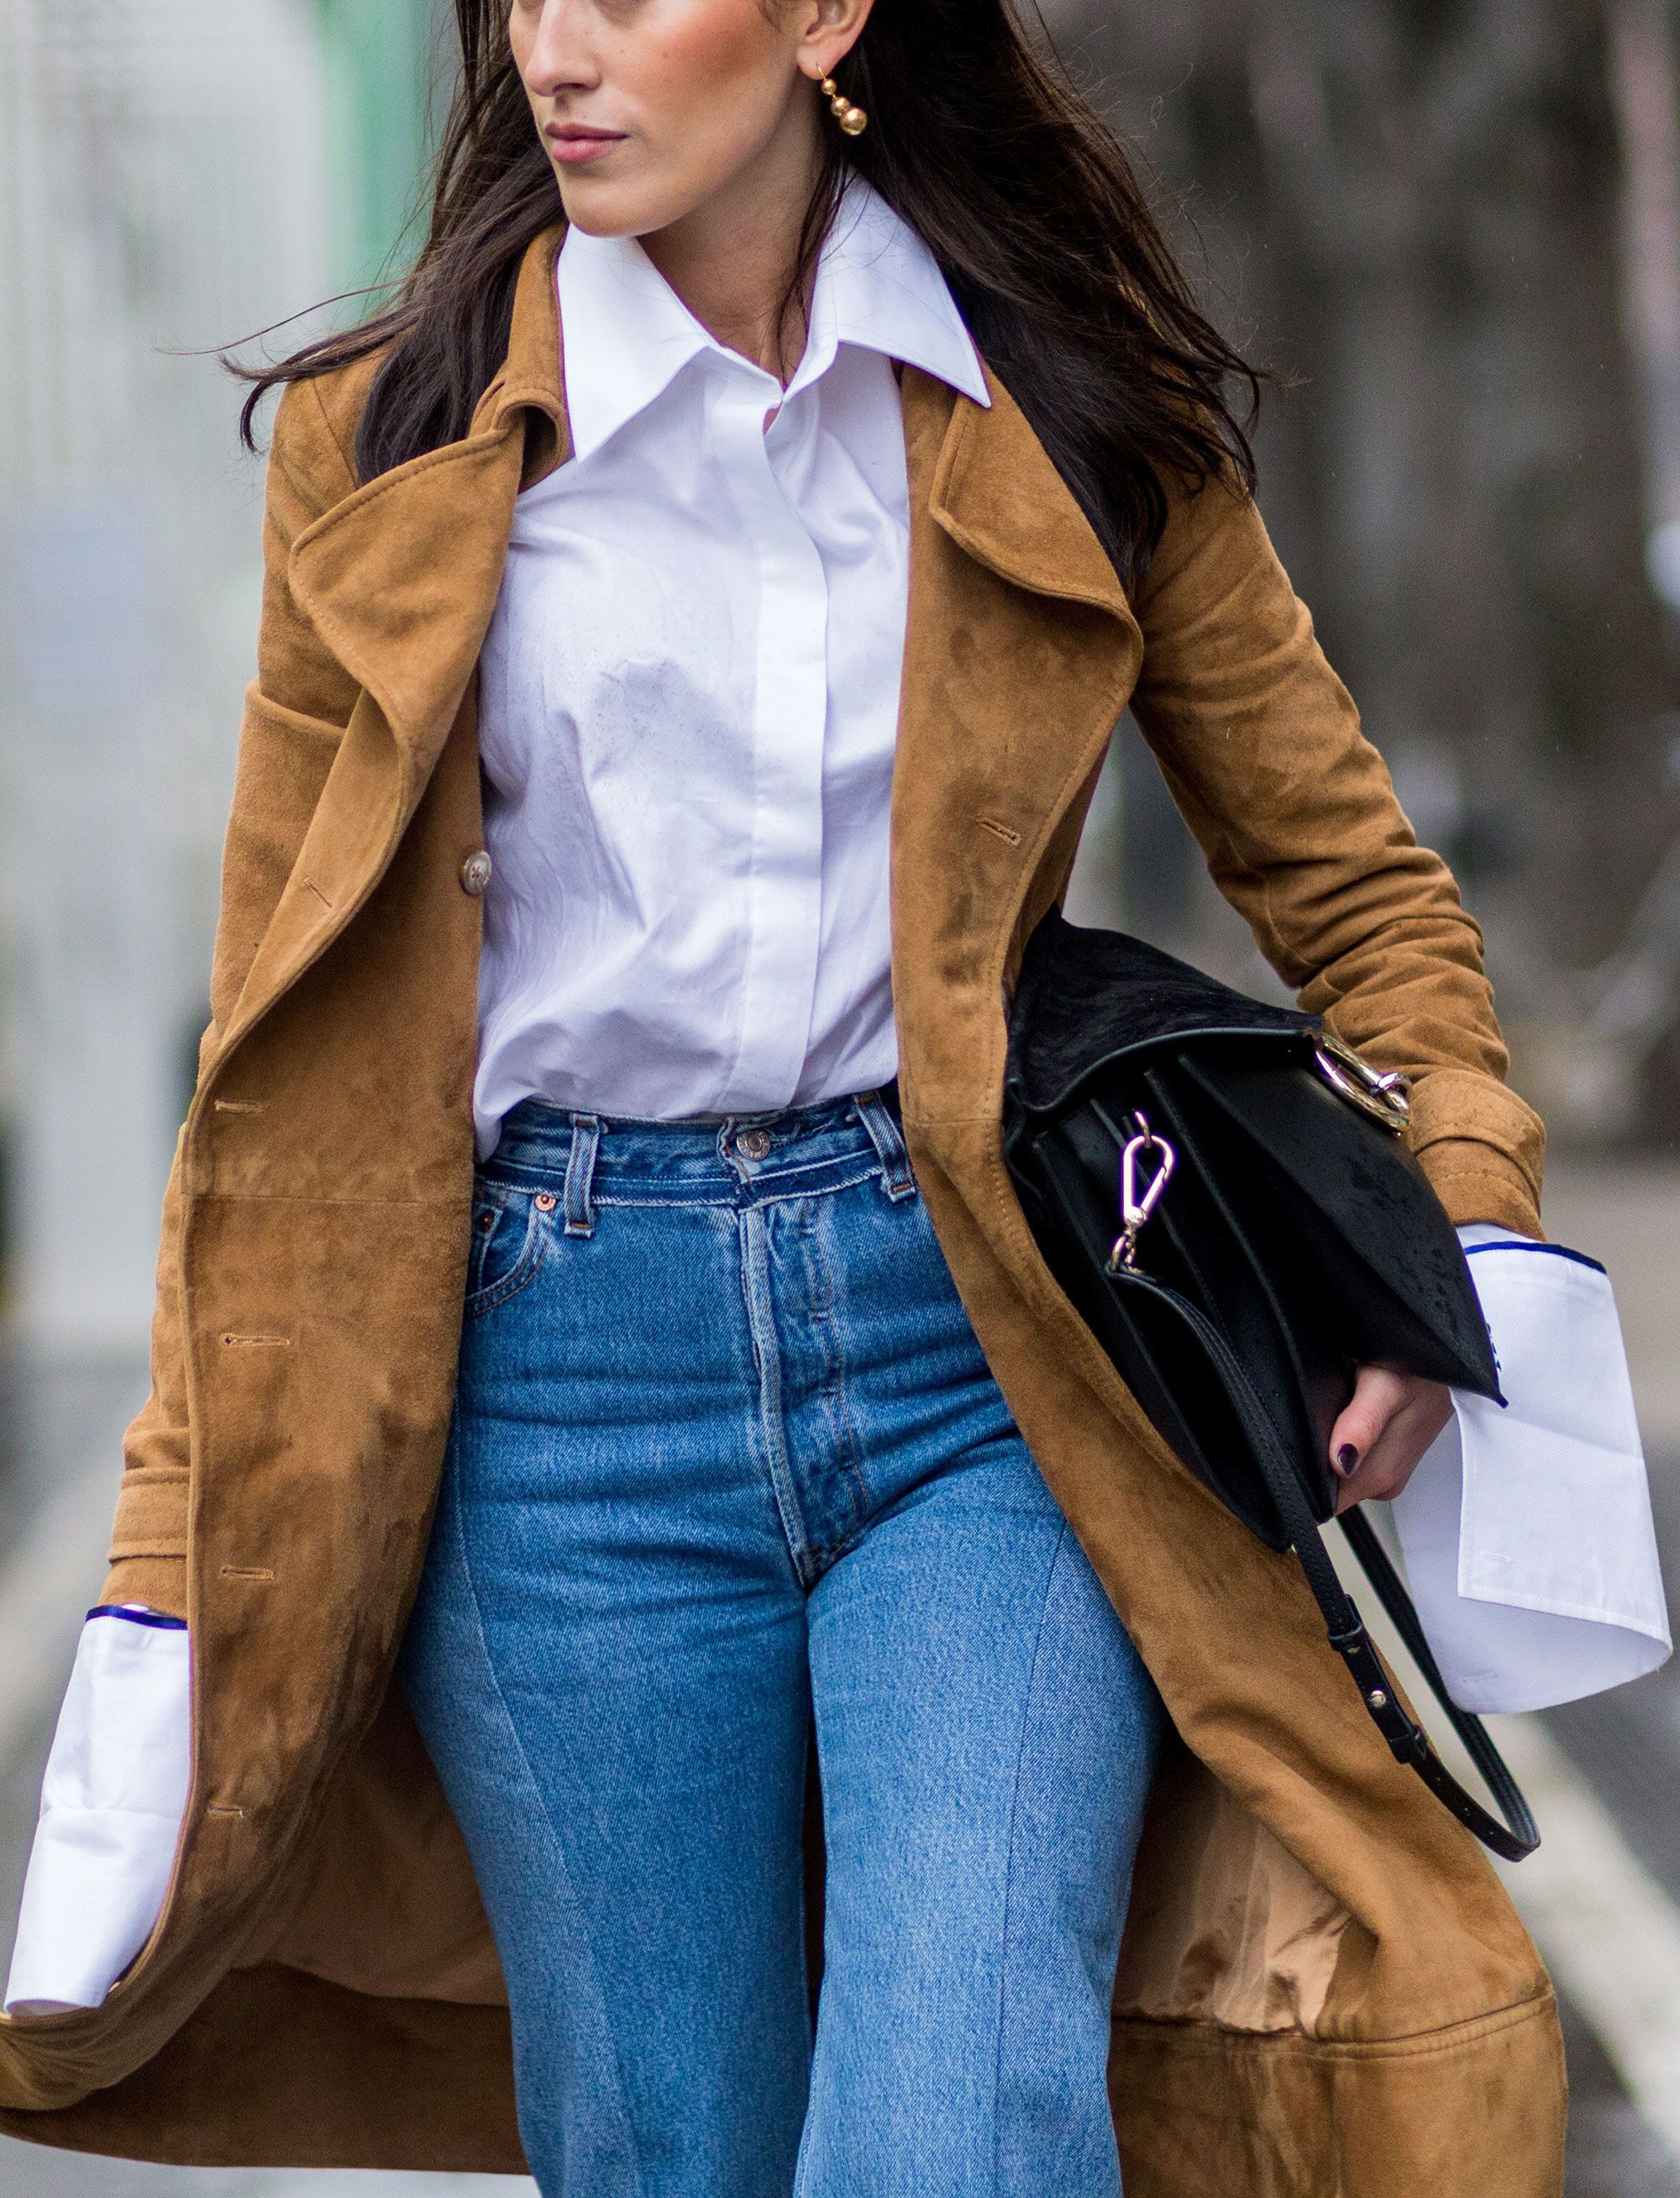 streetstyle snaps to convince you to wear your sleeves extra